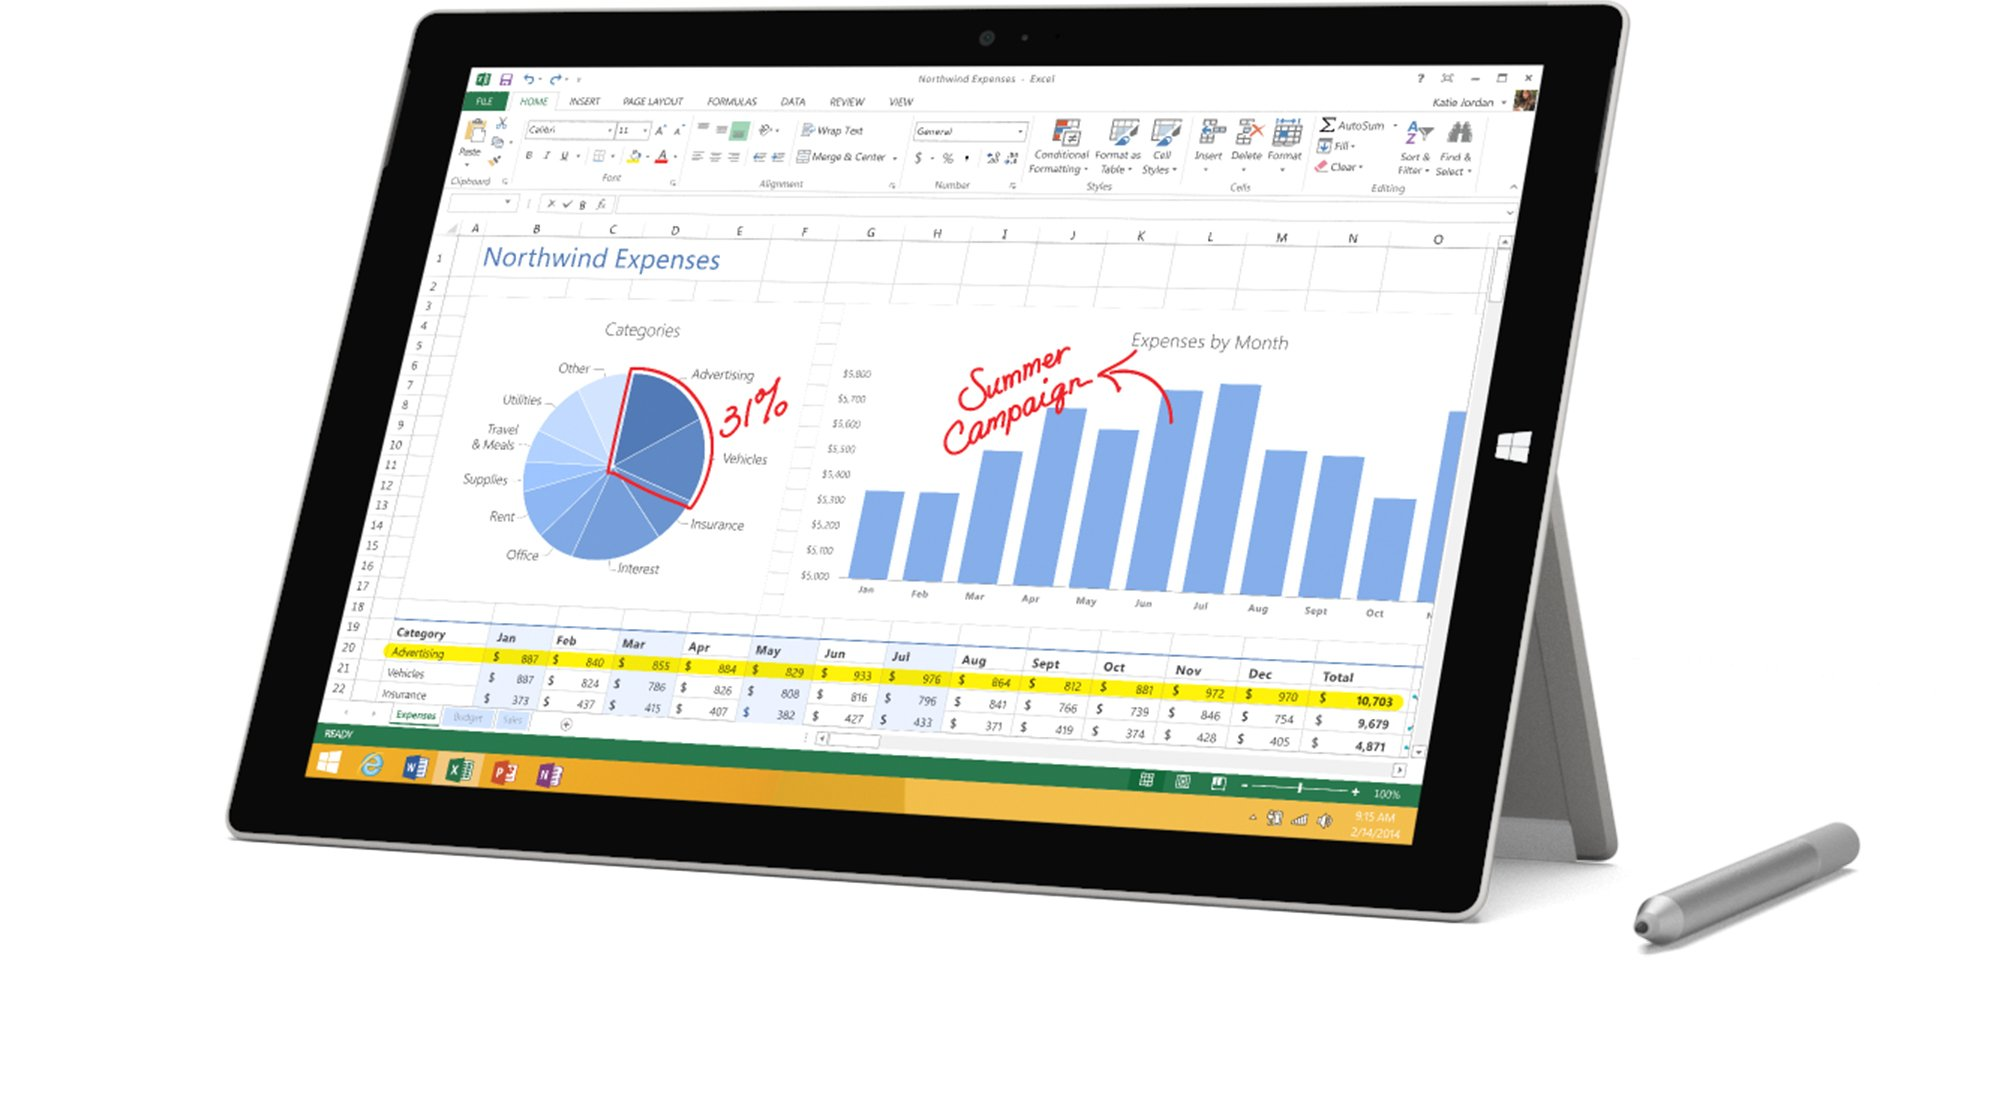 Microsoft Surface Pro 3 MQ2-00001 12-Inch Full HD 128 GB Storage Multi-Touch Tablet (Silver) by Microsoft (Image #1)